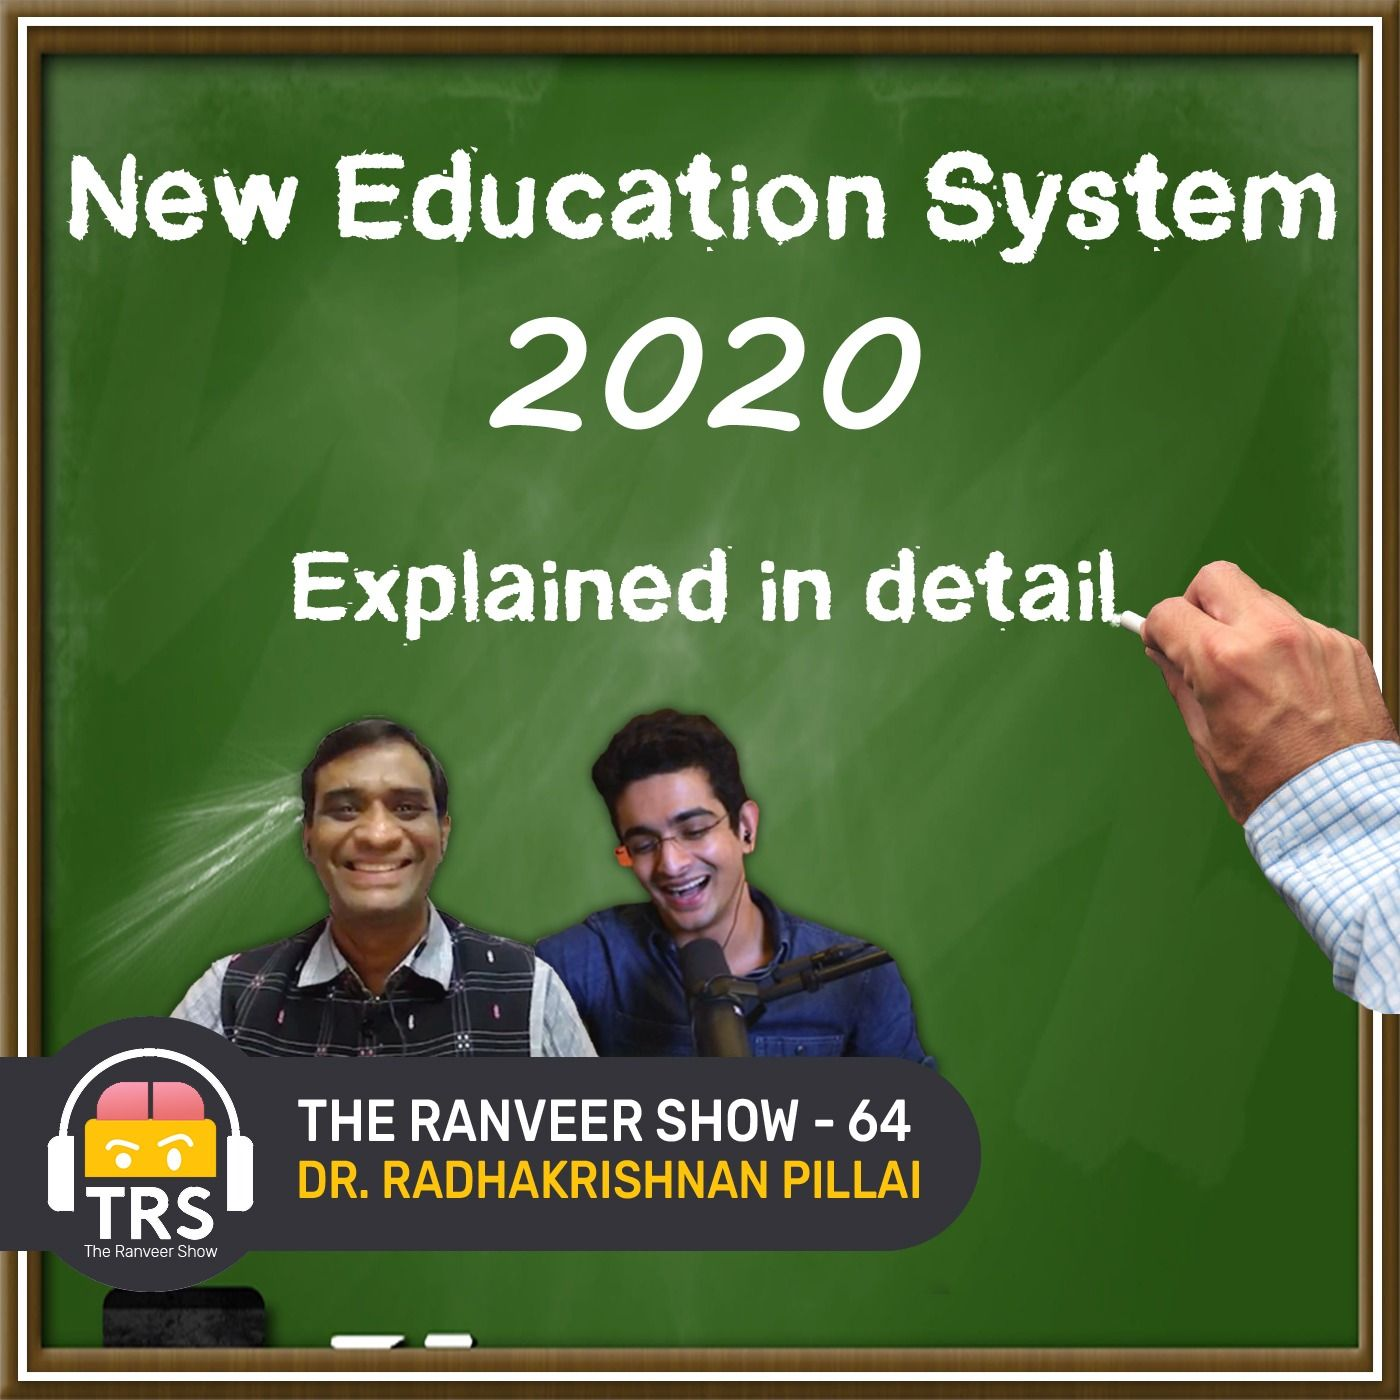 Indian Education System Changes Explained In Detail ft. Dr. Radhakrishnan Pillai | The Ranveer Show 65